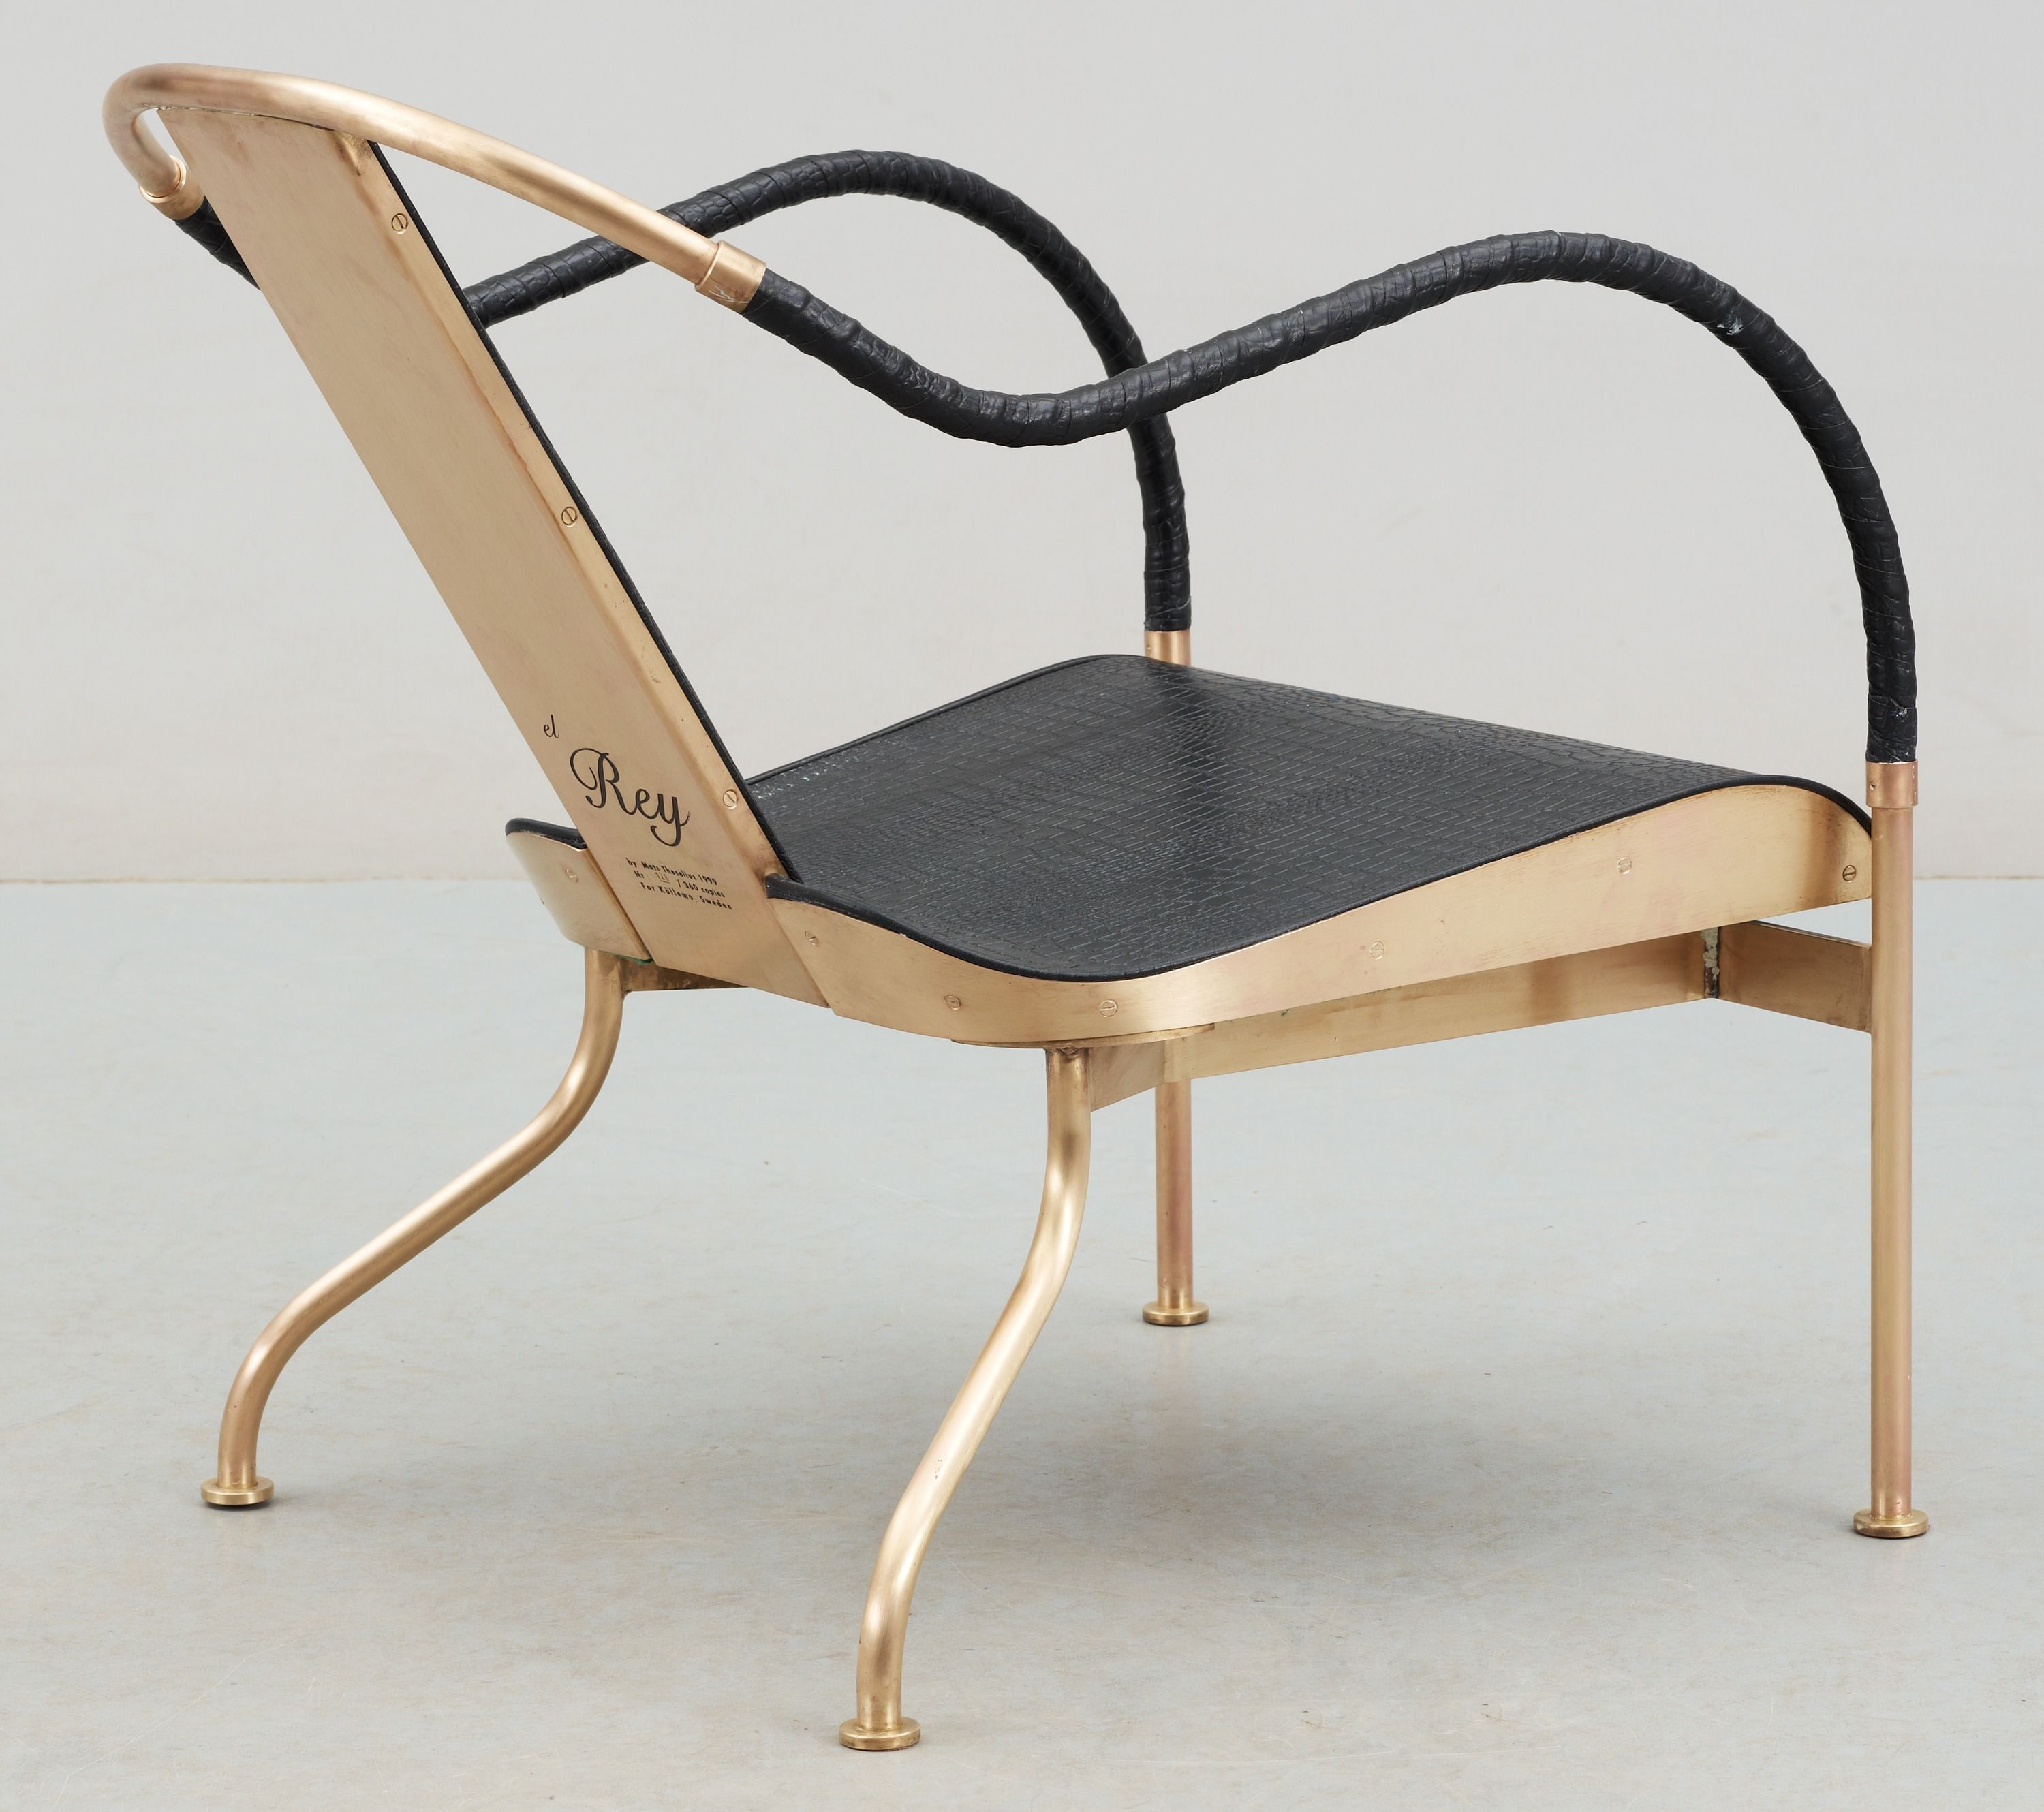 Attirant Mats Theselius U0027El Reyu0027 Easy Chair (1999), Brass And Leather U2013 Källemo AB,  Värnamo, Sweden. | Sillas | Pinterest | Industrial And Interiors